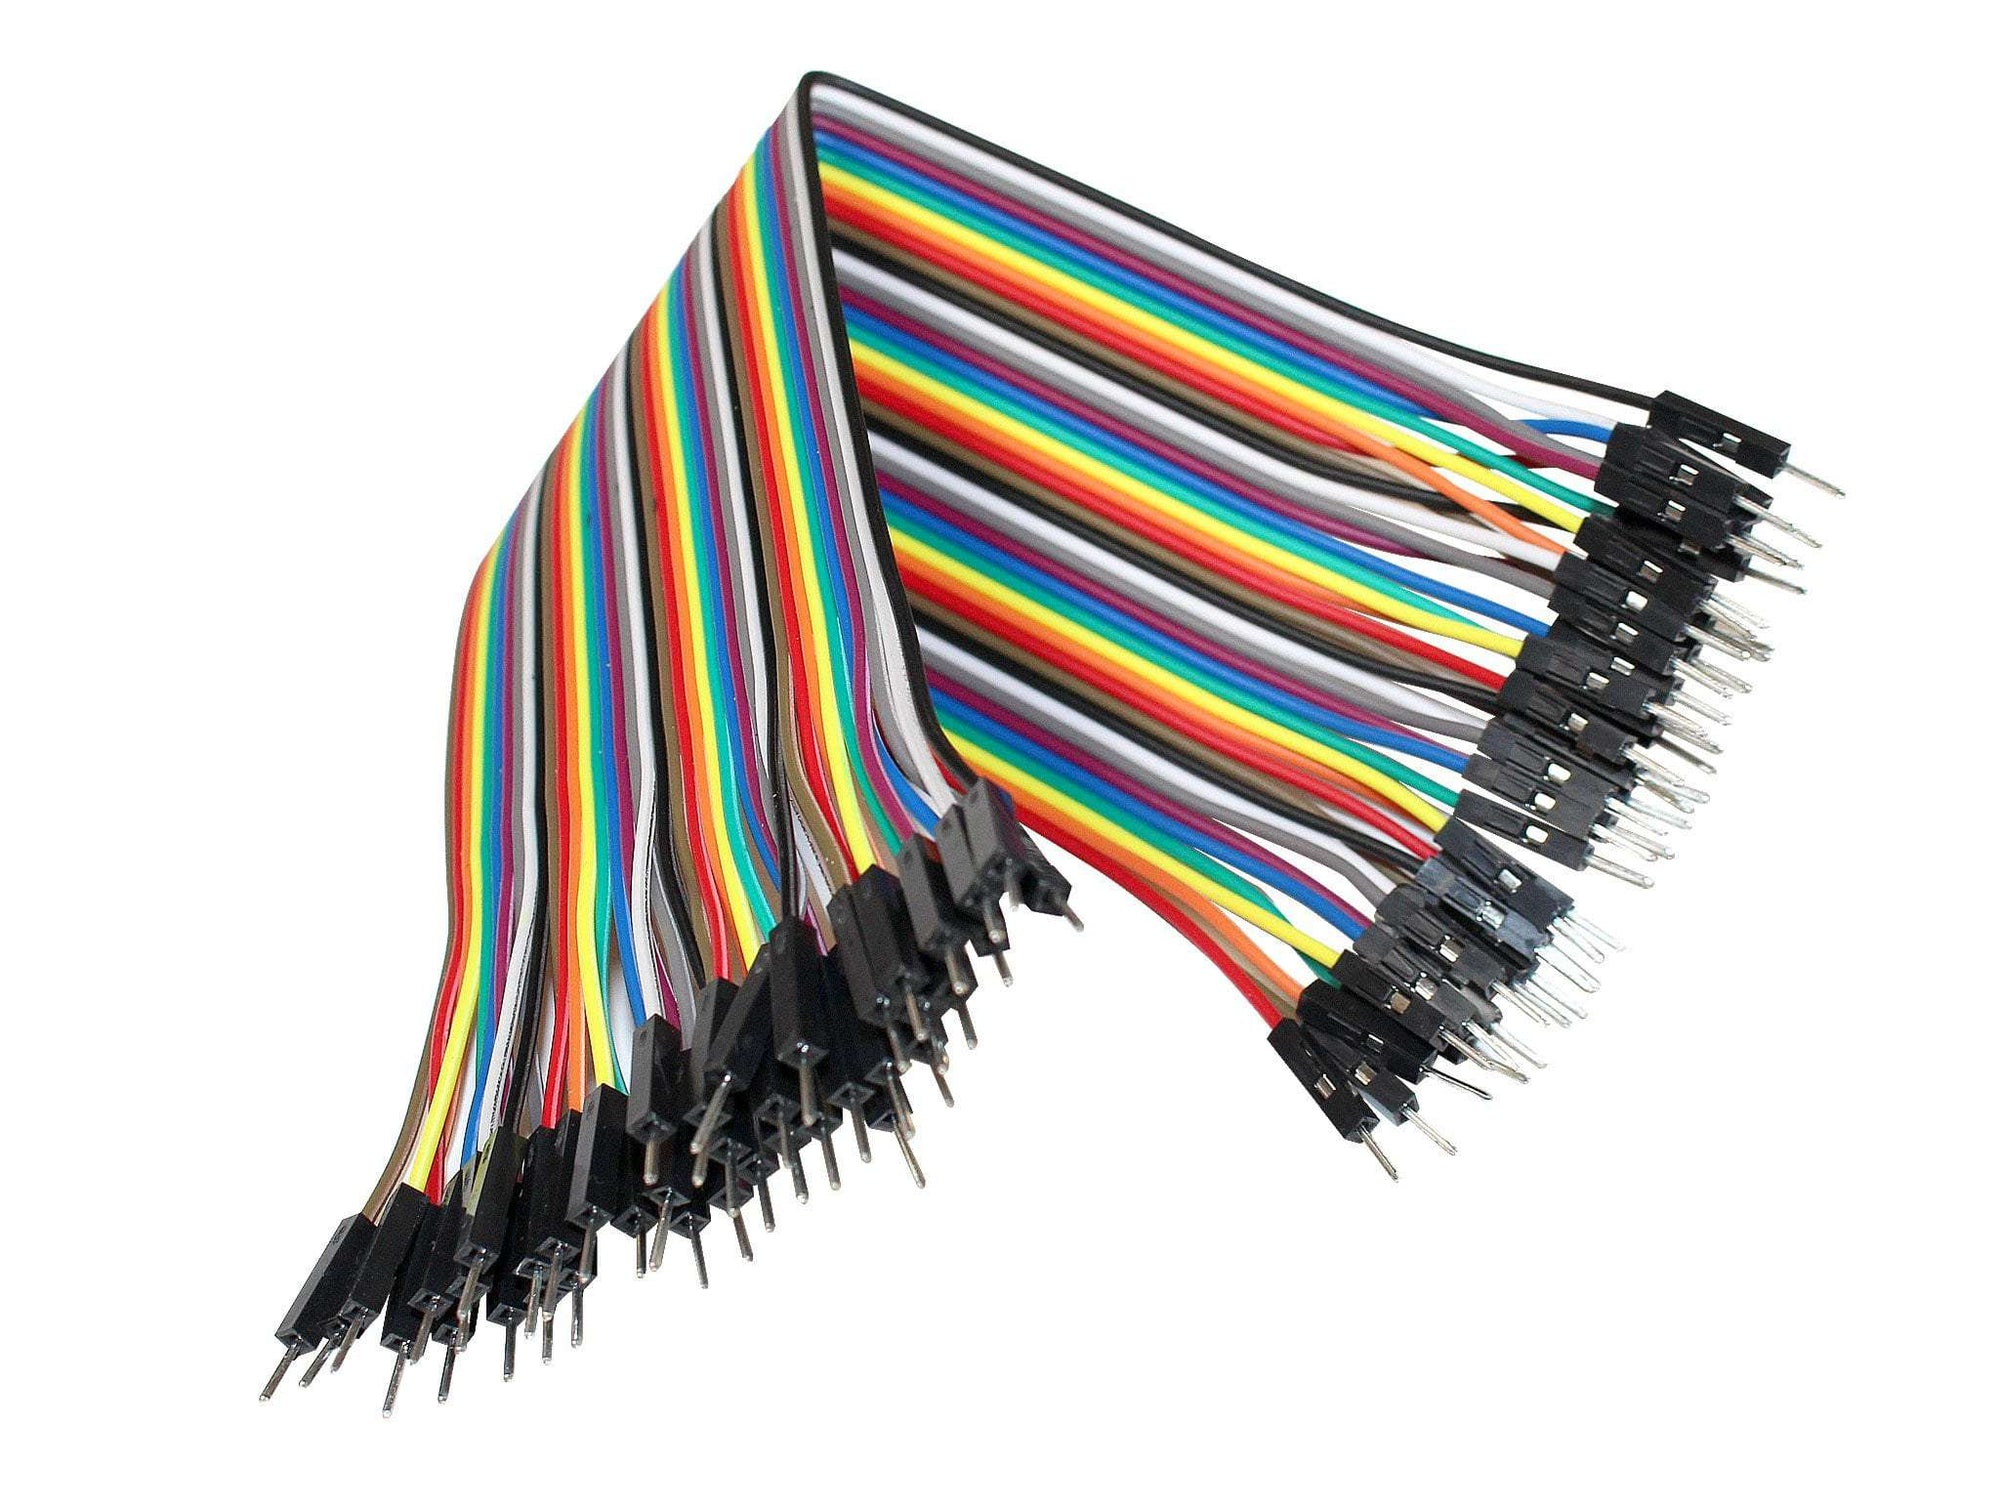 40 DuPont Male to Male Breadboard Jumper Wires